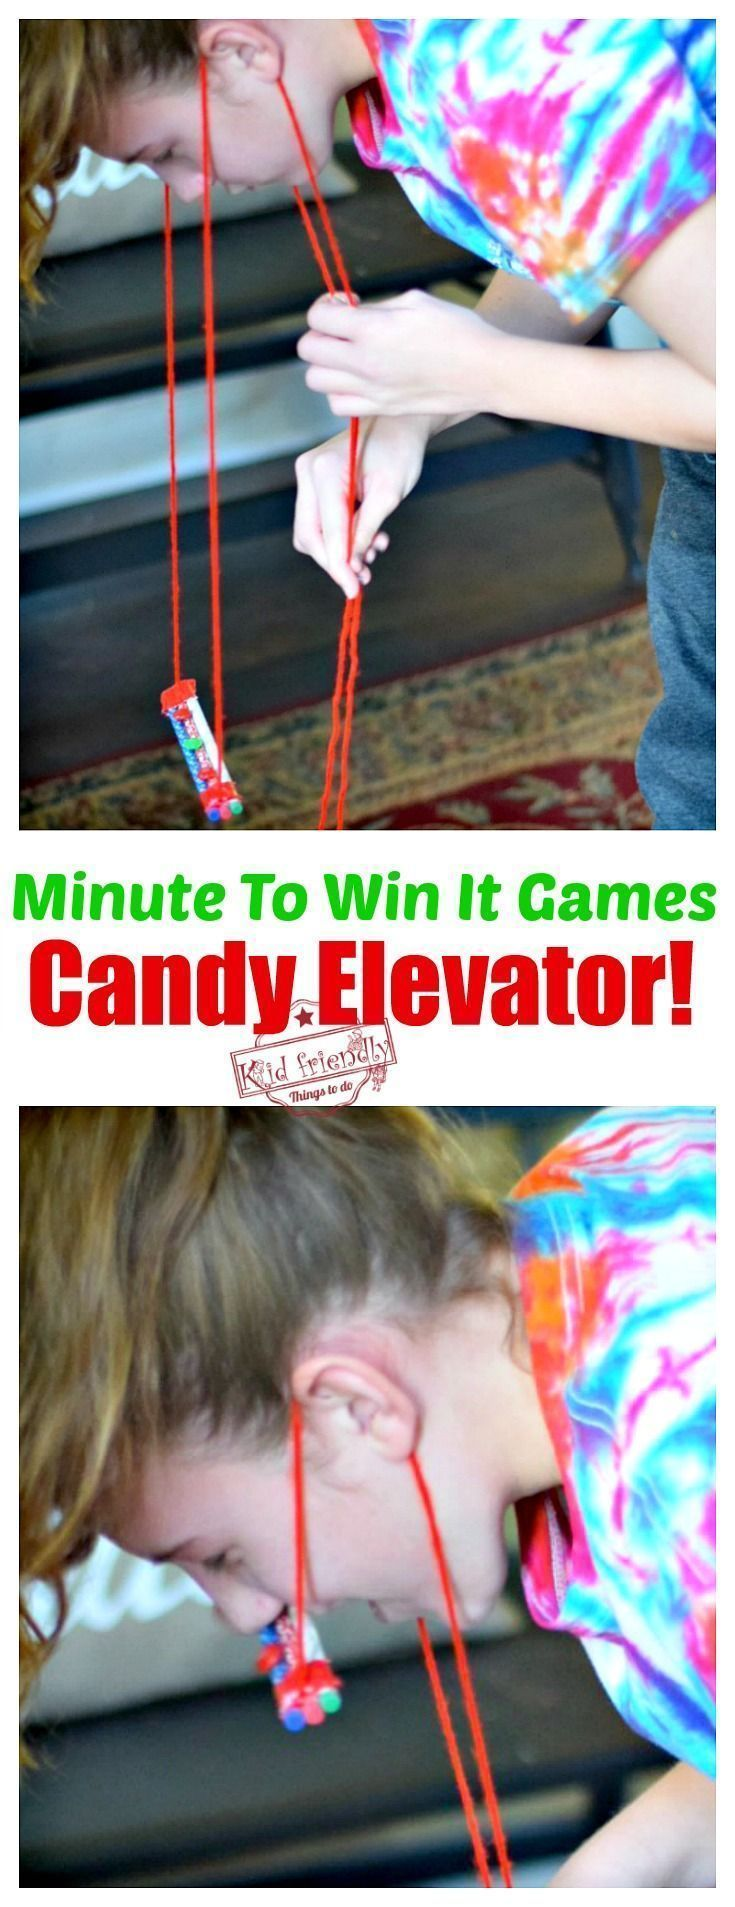 Candy Elevator Lots of fun Minute to Win It Games to